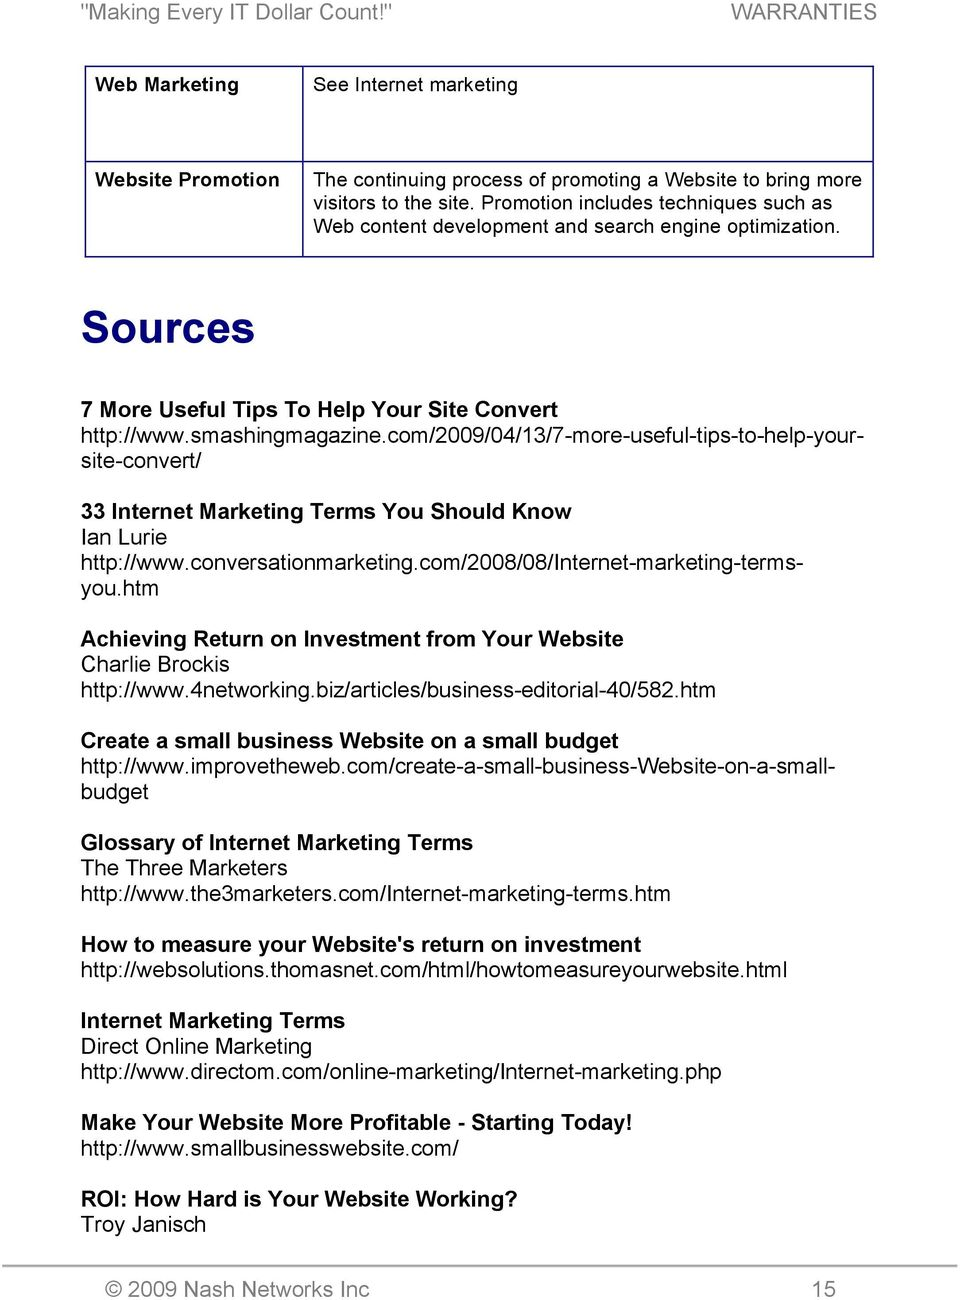 com/2009/04/13/7-more-useful-tips-to-help-yoursite-convert/ 33 Internet Marketing Terms You Should Know Ian Lurie http://www.conversationmarketing.com/2008/08/internet-marketing-termsyou.